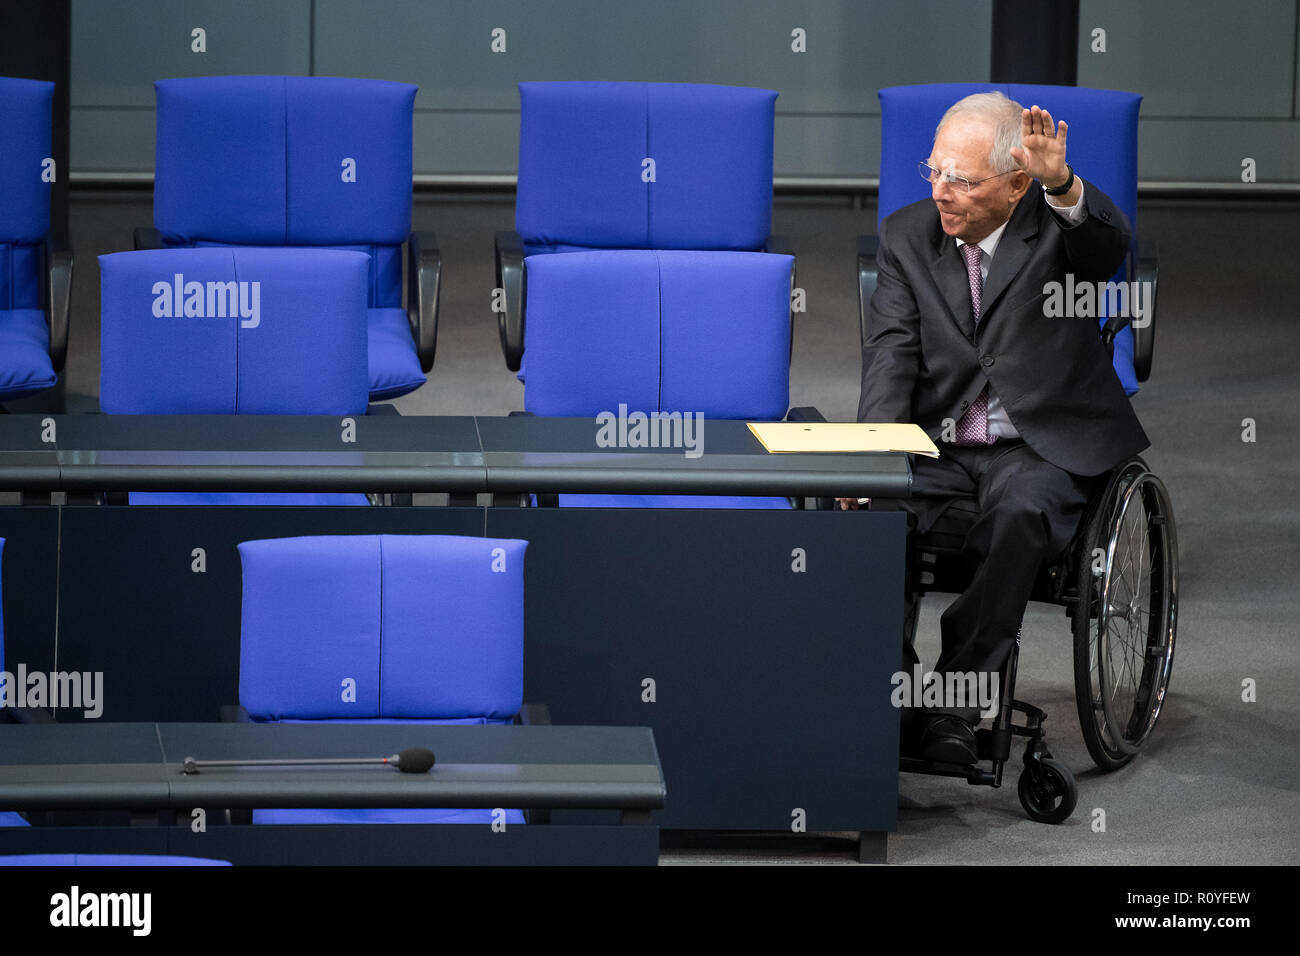 Berlin, Germany. 08th Nov, 2018. Bundestag President Wolfgang Schäuble (CDU) raises his left arm in a vote during the plenary session of the German Bundestag. Topics of the 61st session of the 19th legislative period include the pension package introduced by the Federal Government, additional safe countries of origin, tax relief for families, changes in asylum law, accelerated traffic planning and a current hour on the INF (Intermediate Range Nuclear Forces) nuclear disarmament treaty. Credit: Bernd von Jutrczenka/dpa/Alamy Live News Credit: Bernd von Jutrczenka/dpa/Alamy Live News - Stock Image